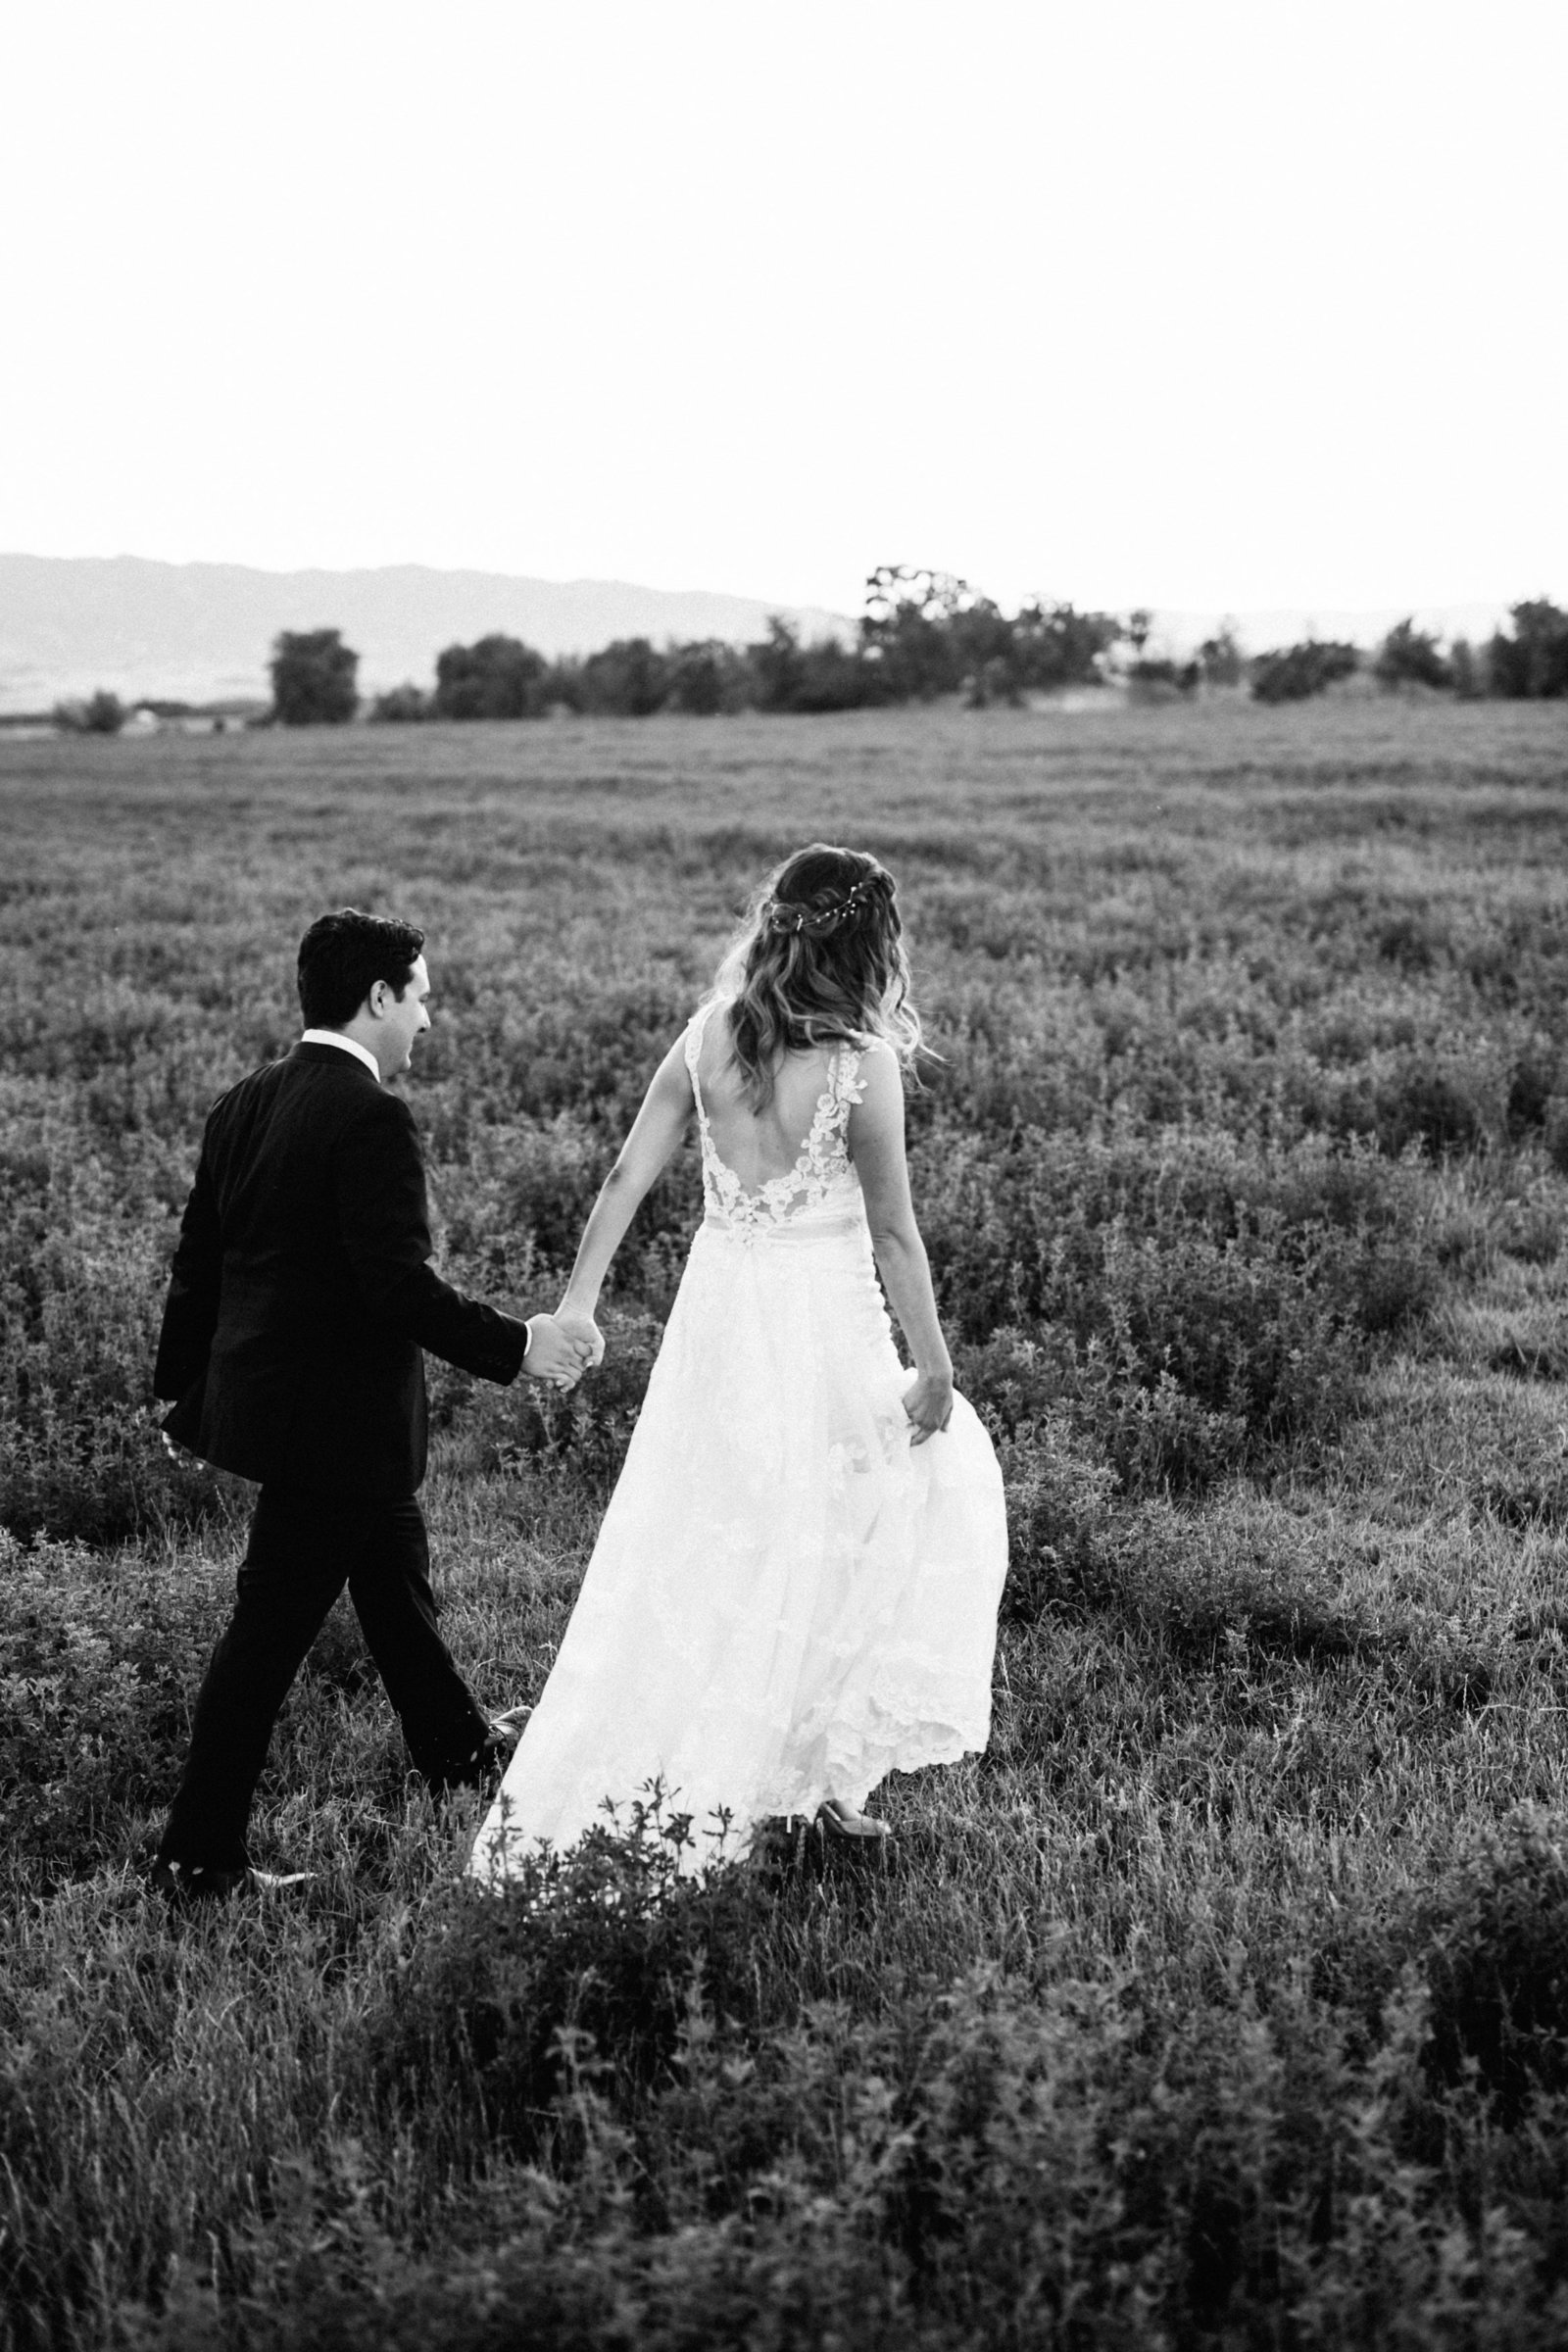 Ryan Greenleaf_Northern California Wedding Photographer_118Website_2017_Wedding91